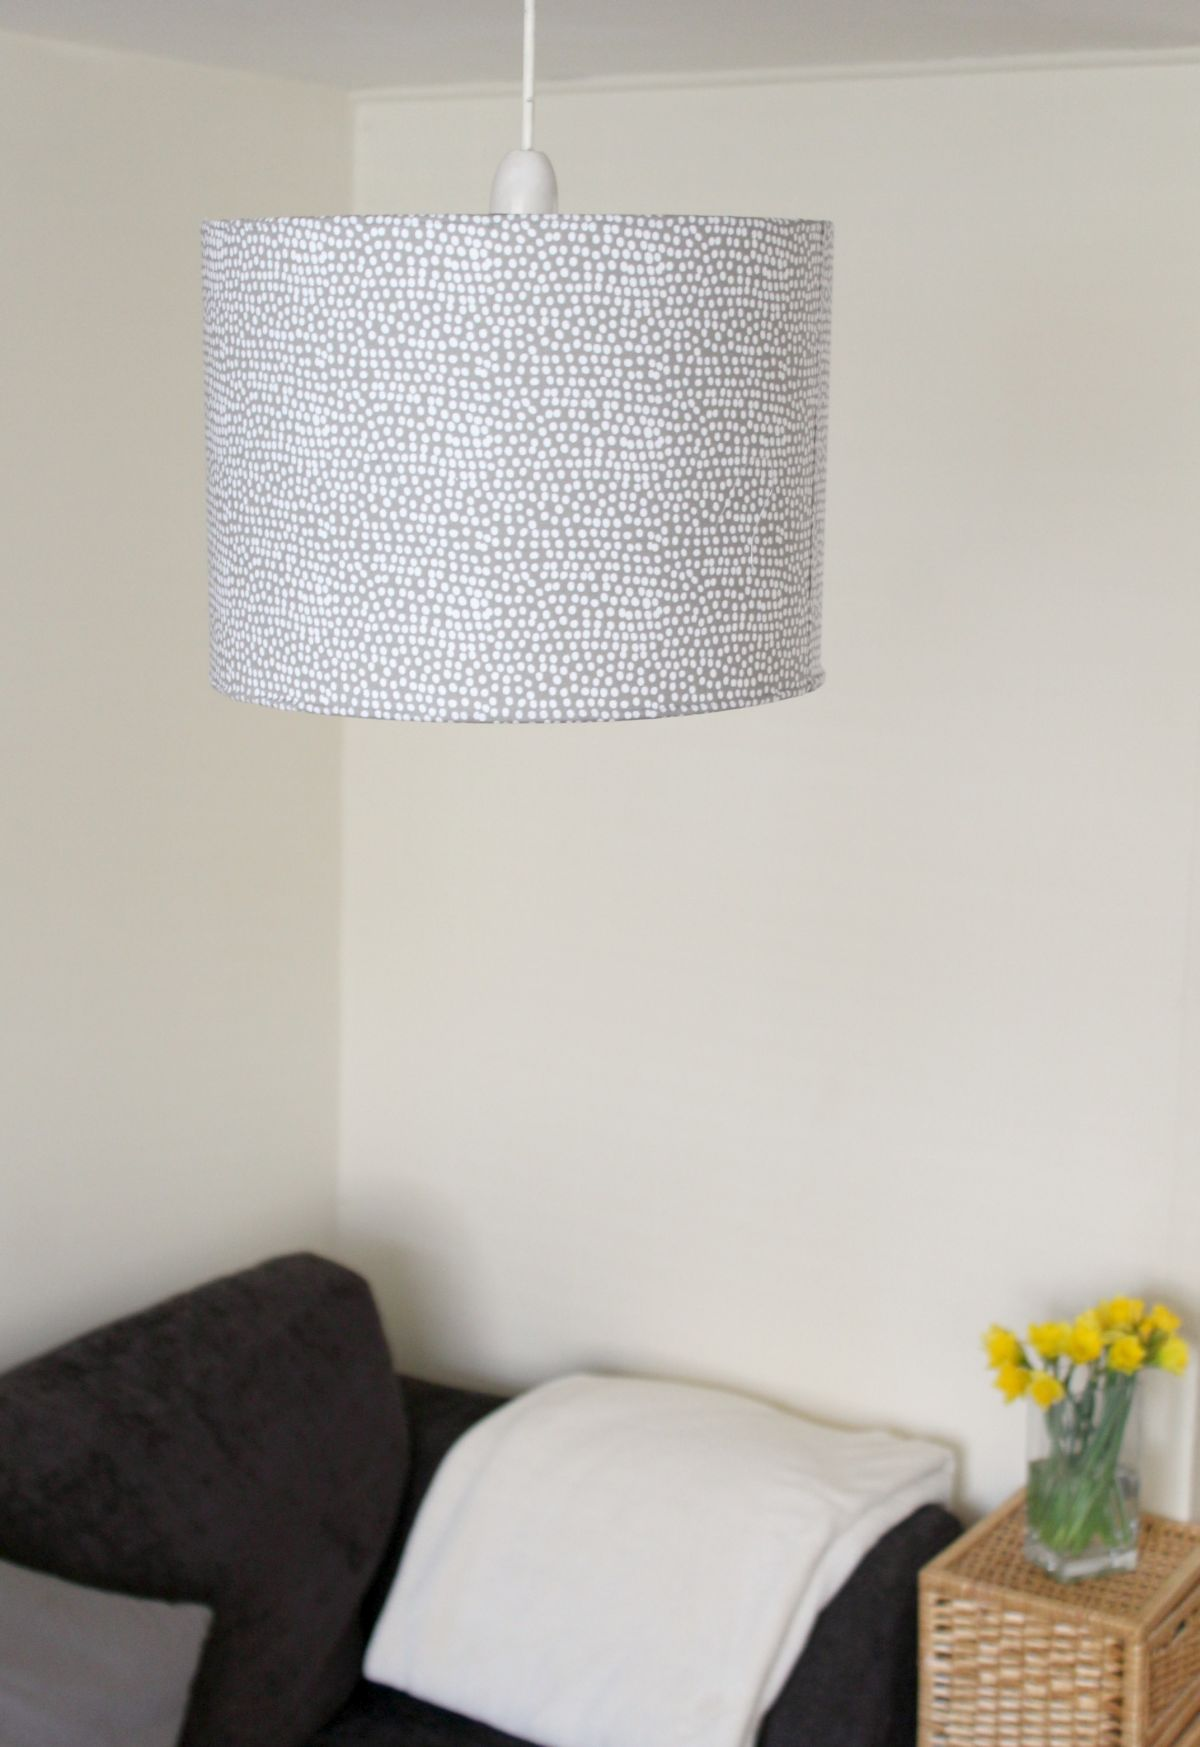 Living fabric lampshade